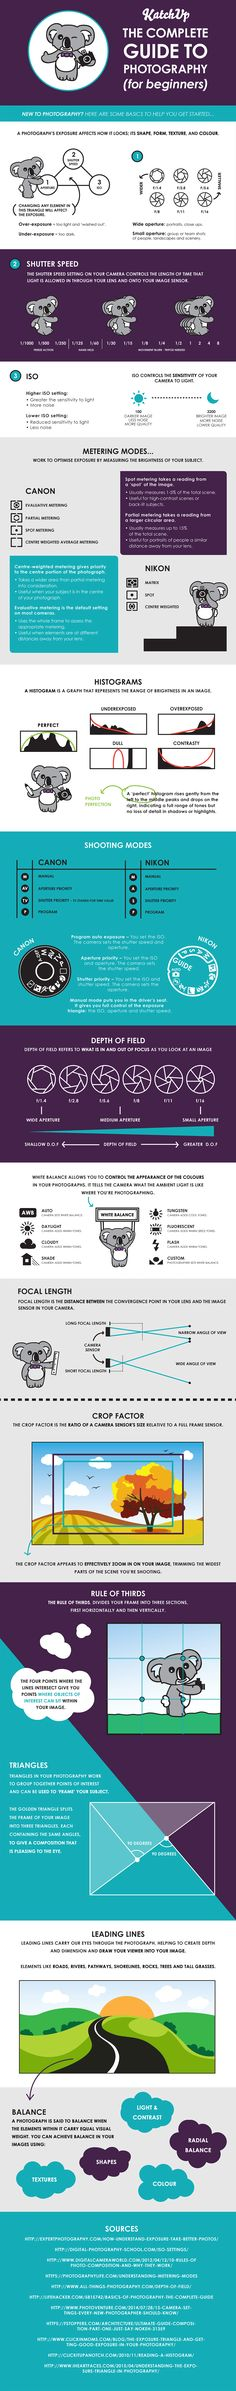 The Complete Guide to Photography for Beginners (infographic)